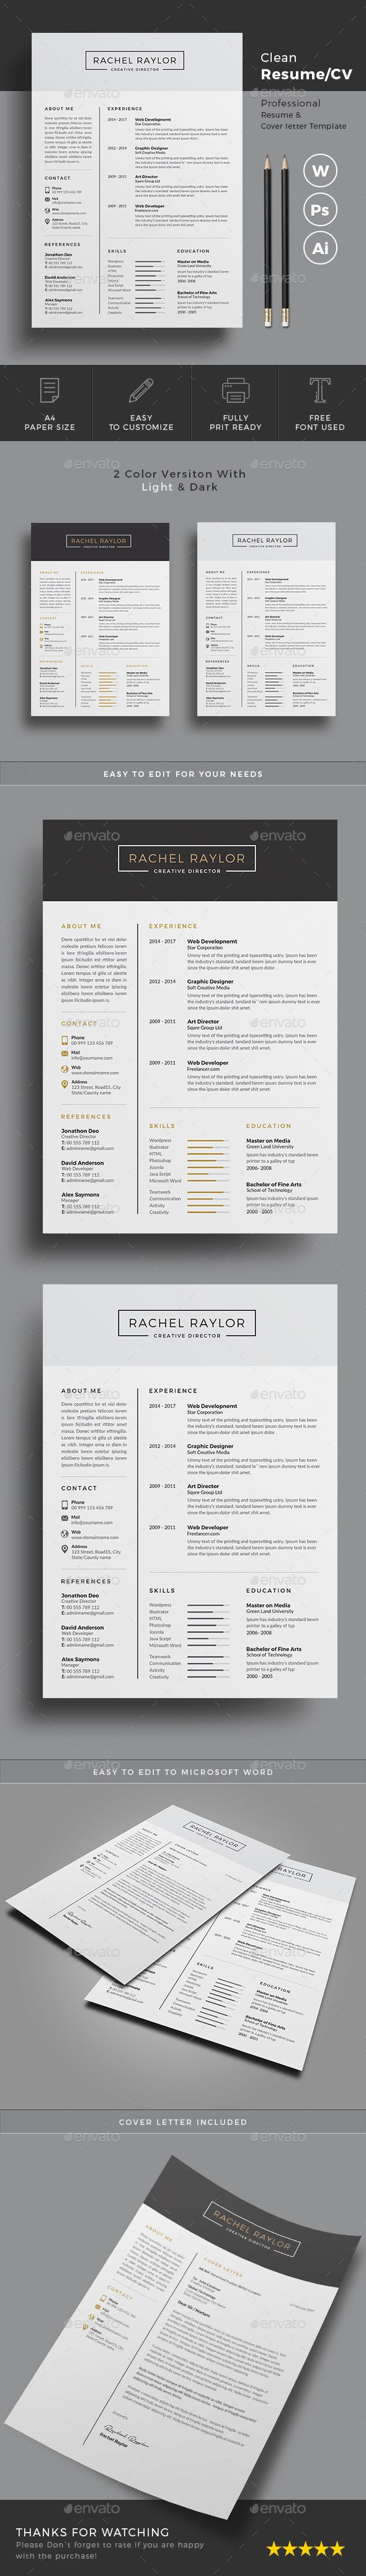 Resume 89 best RESUMESCARDS images on Pinterest